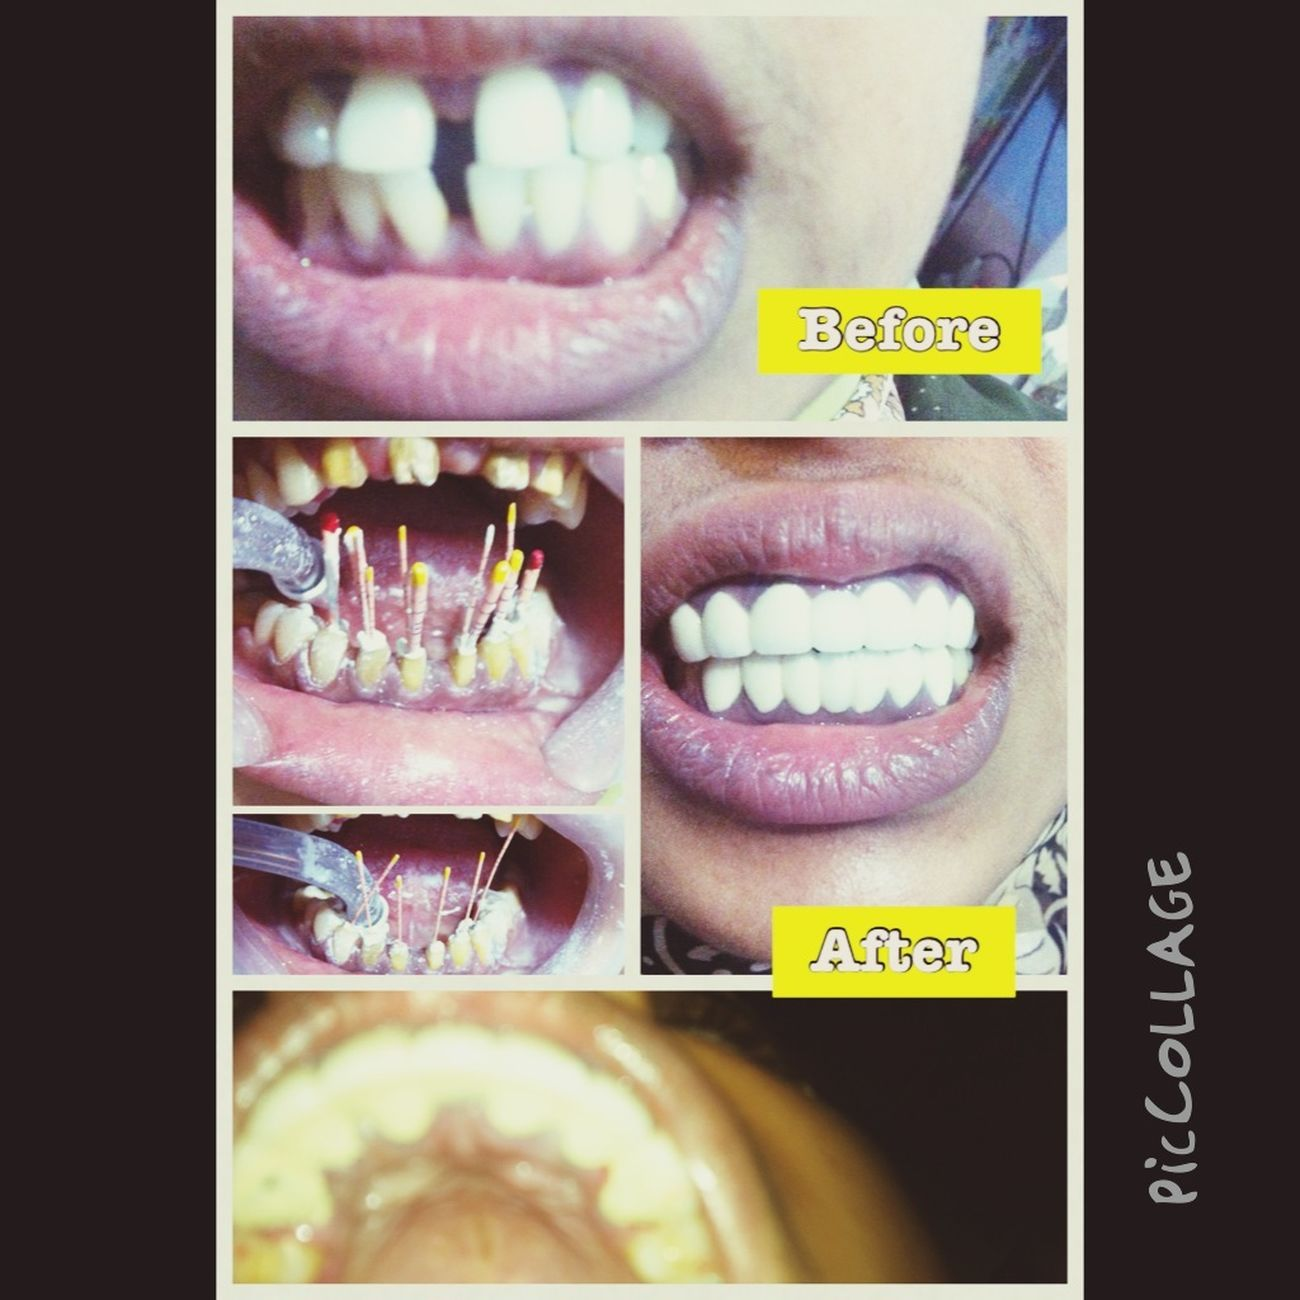 Orthodontic treatment changed by conservative treatment